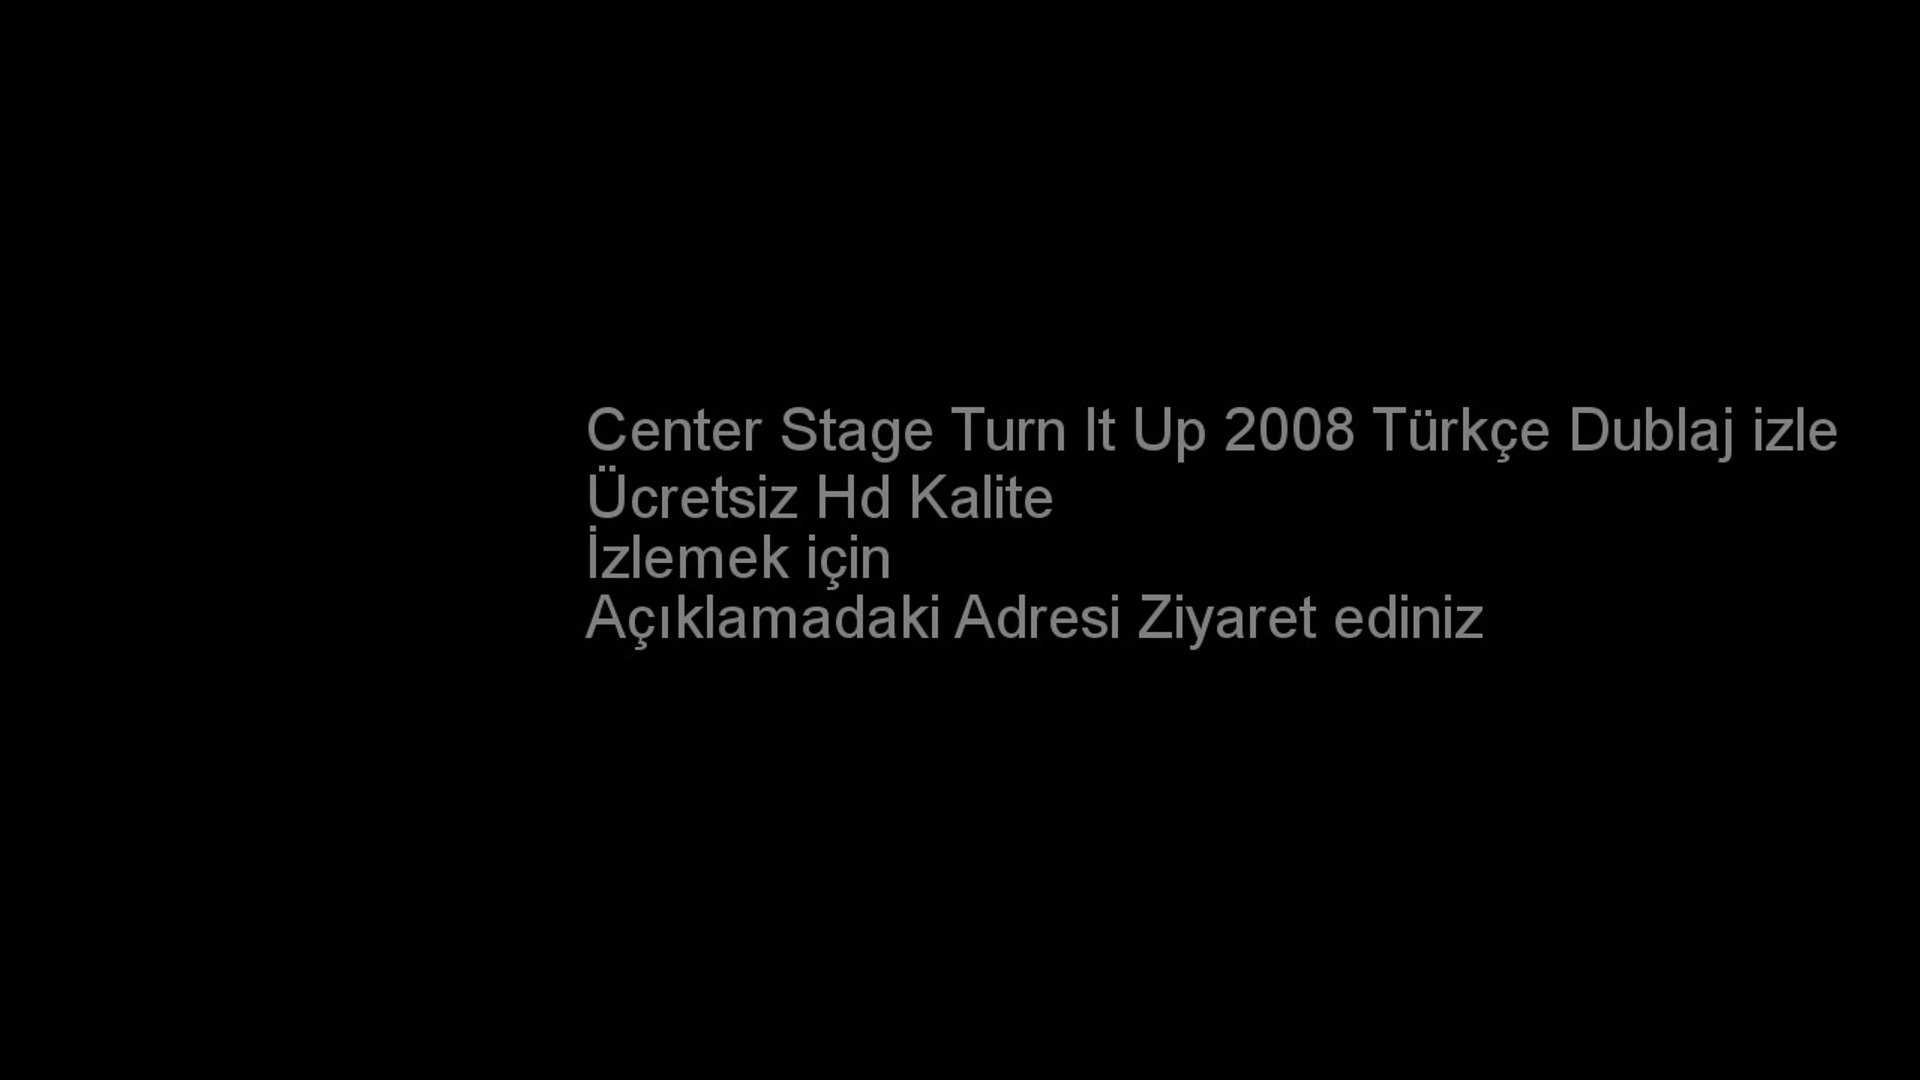 Center Stage Turn It Up 2008 Türkçe Dublaj izle